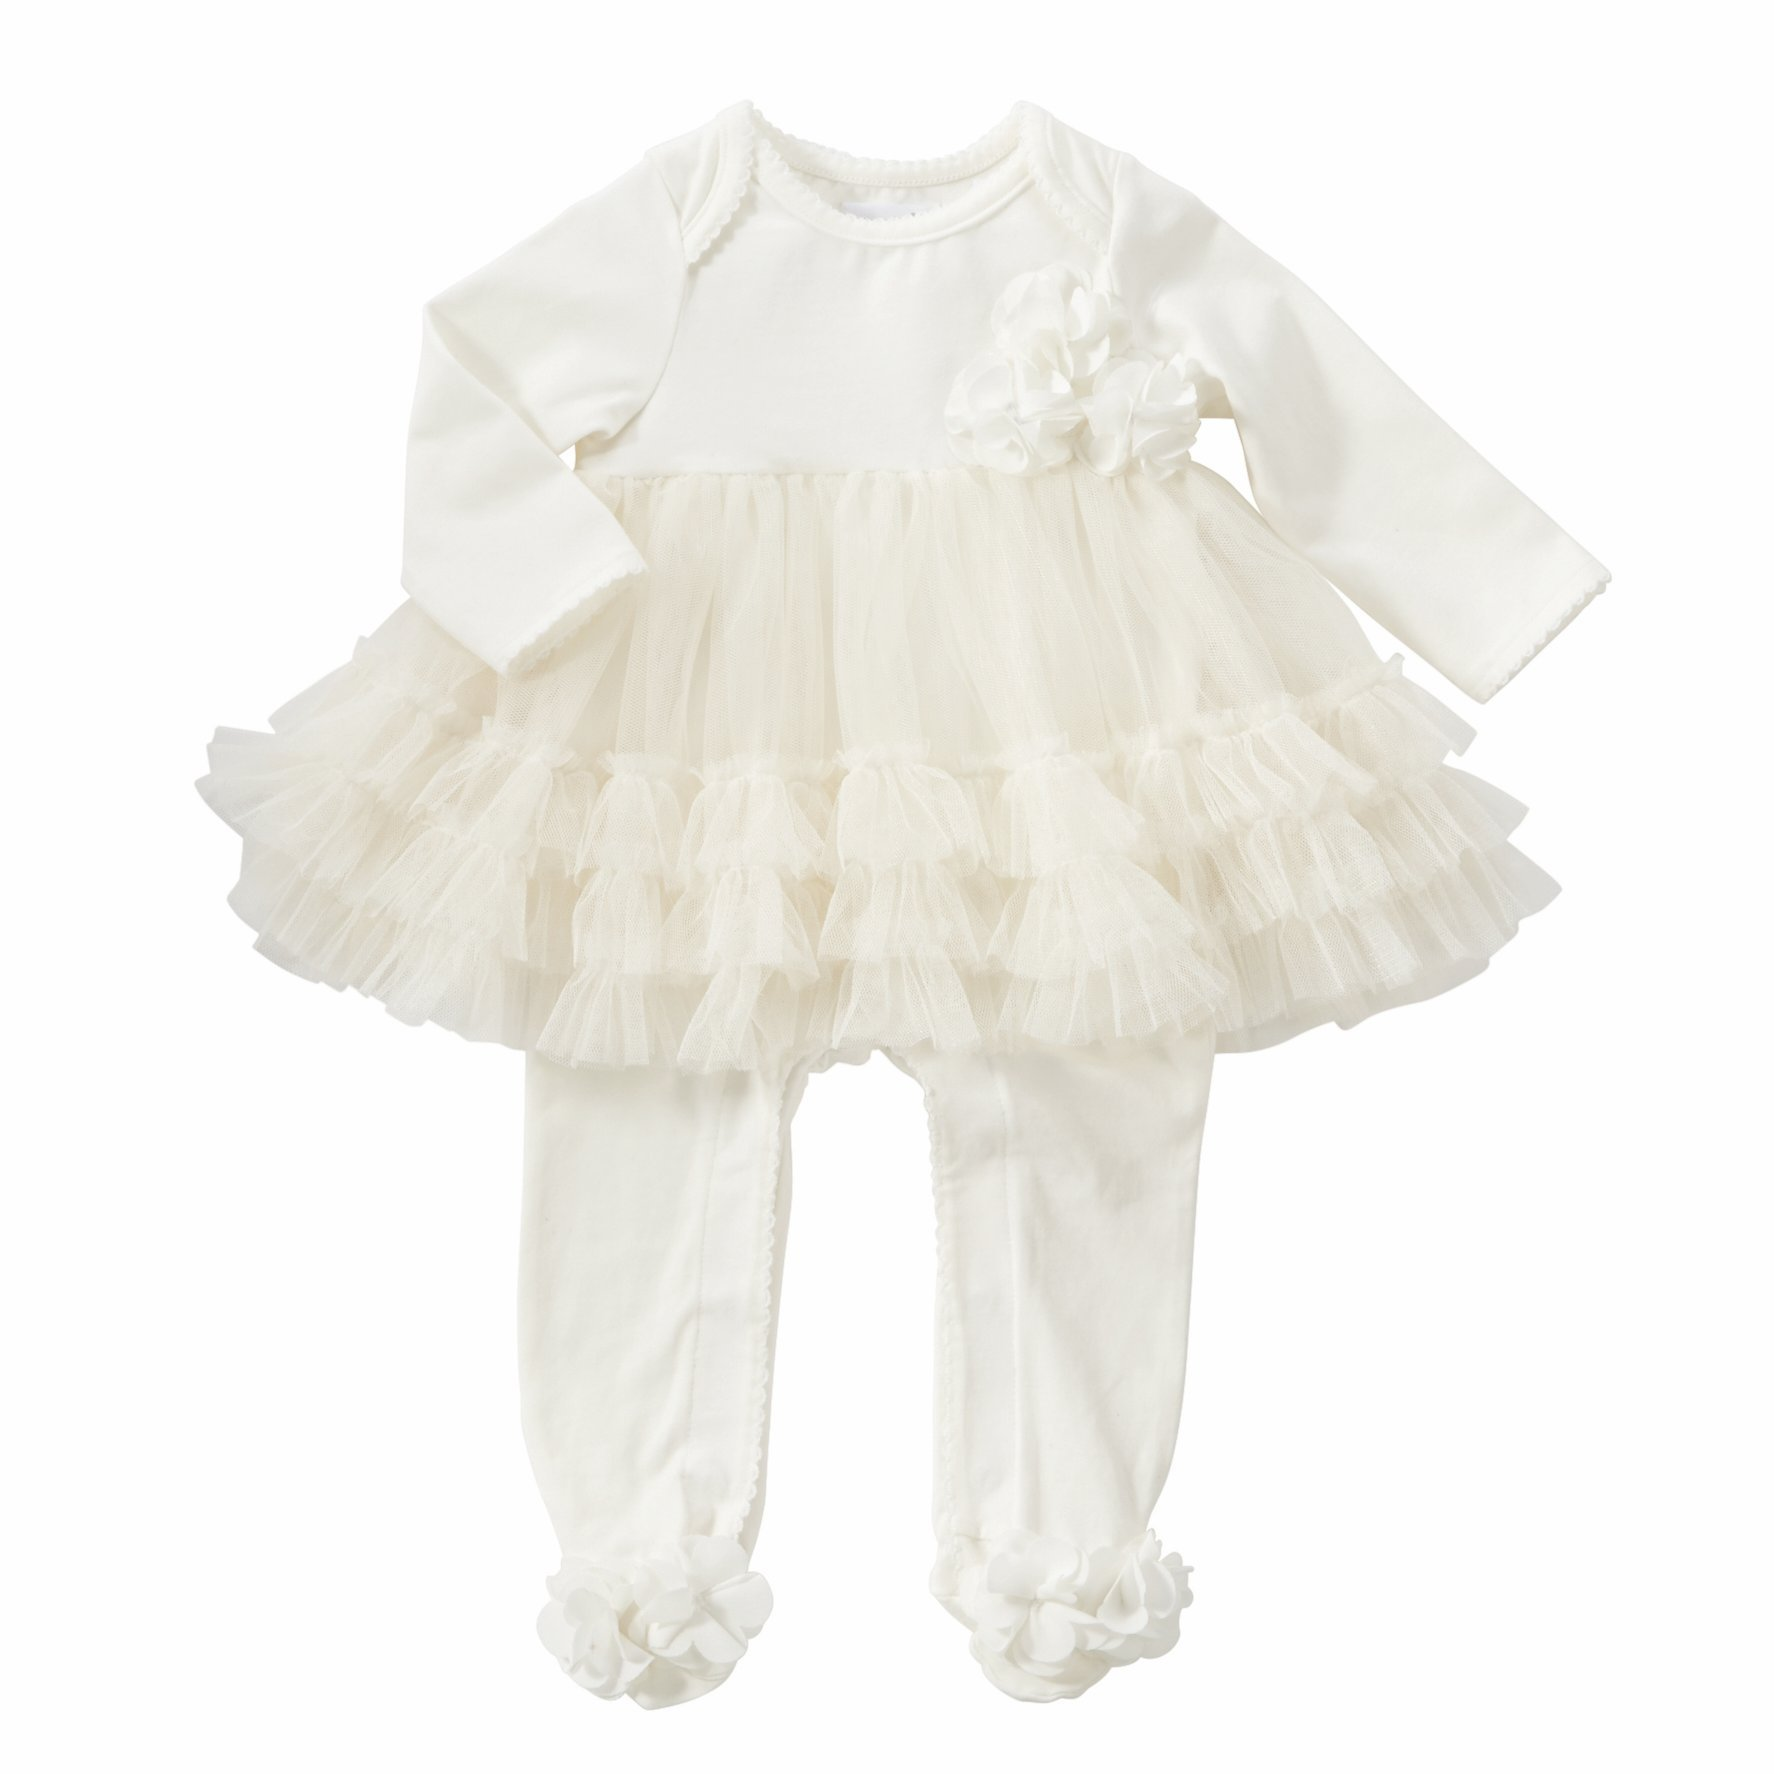 Mud Pie Girls Sleeper Ivory Mesh Skirted Cotton Baby Apparel 3-6 Months